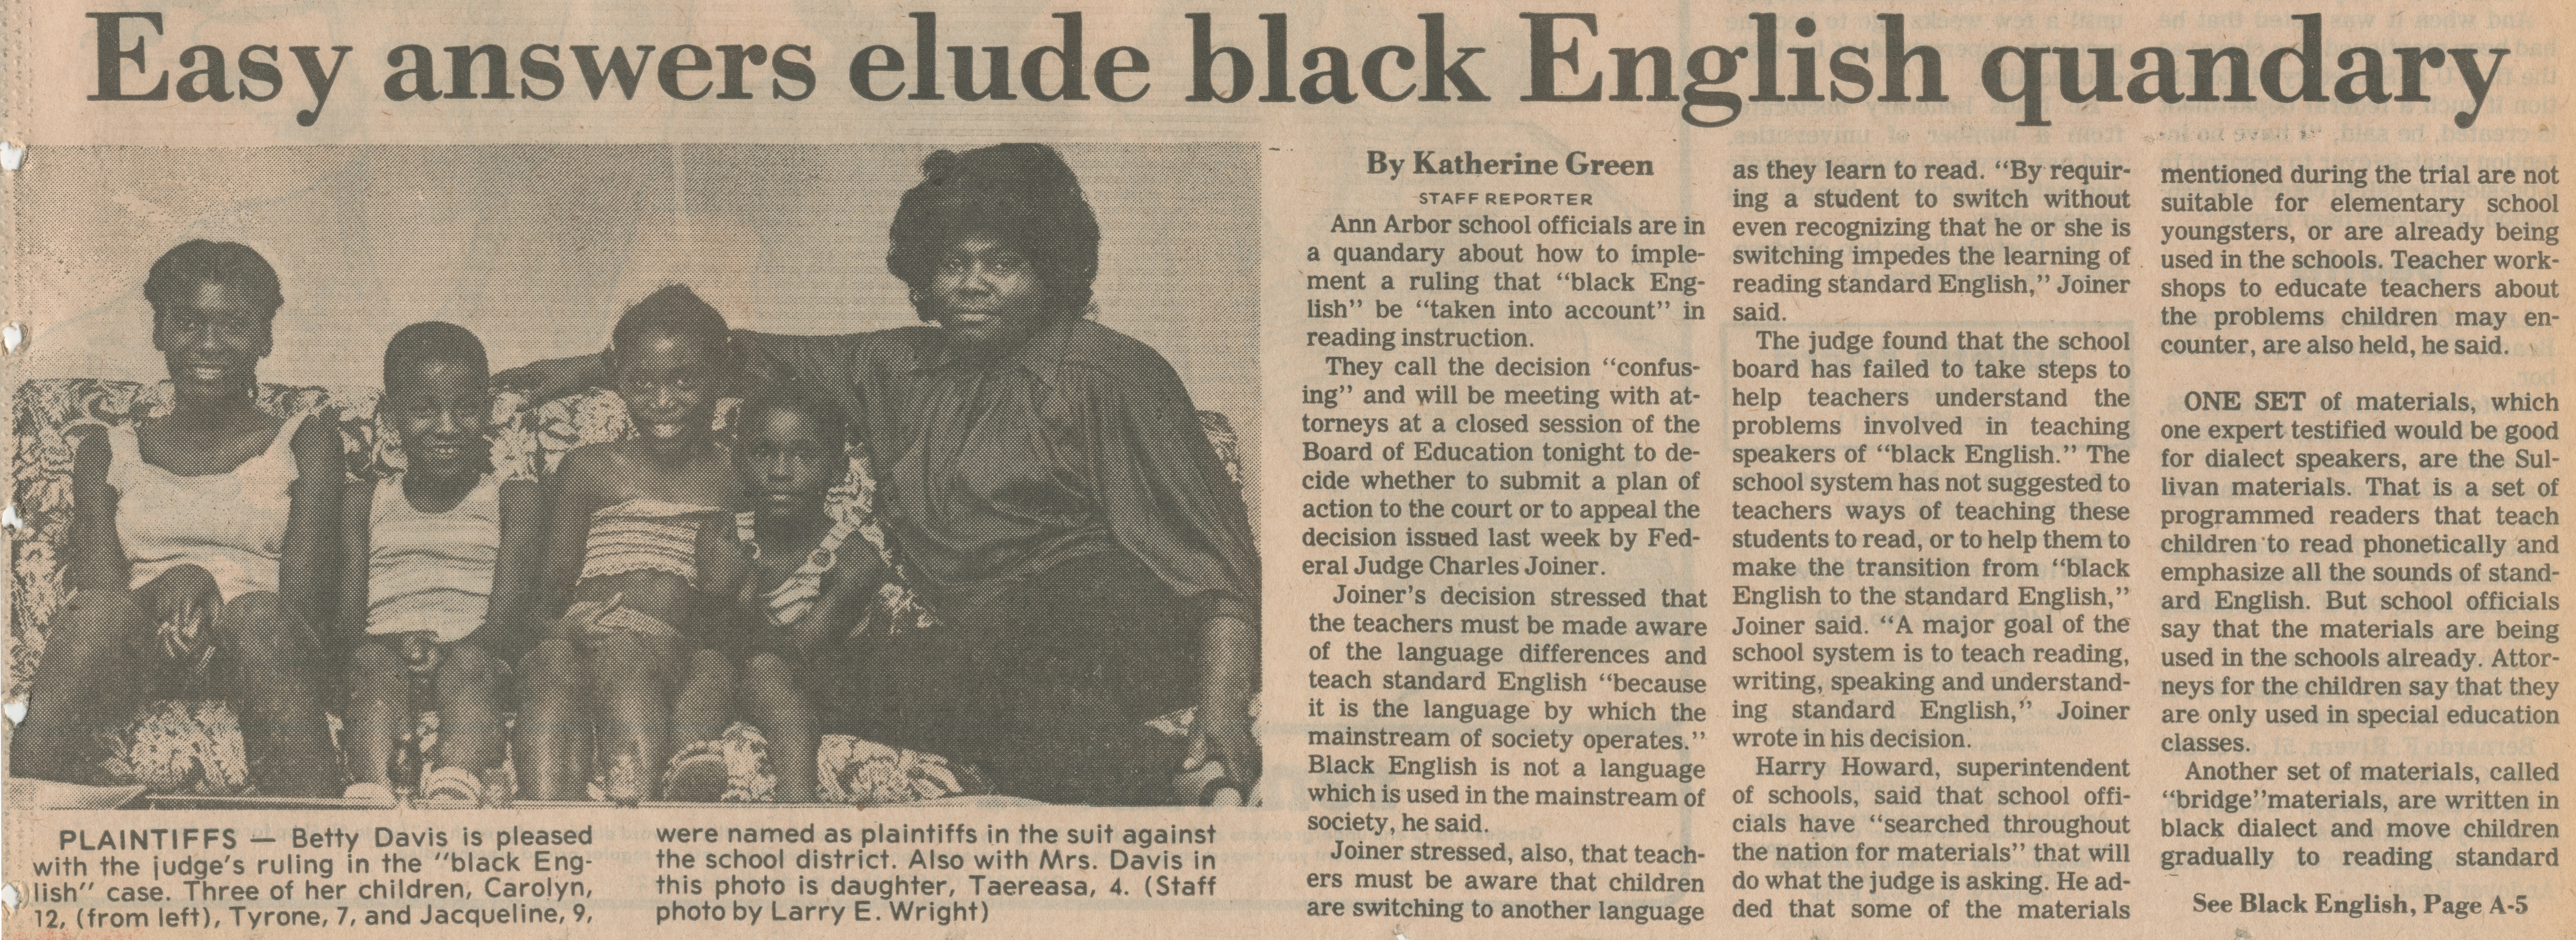 Easy Answers Elude Black English Quandry image